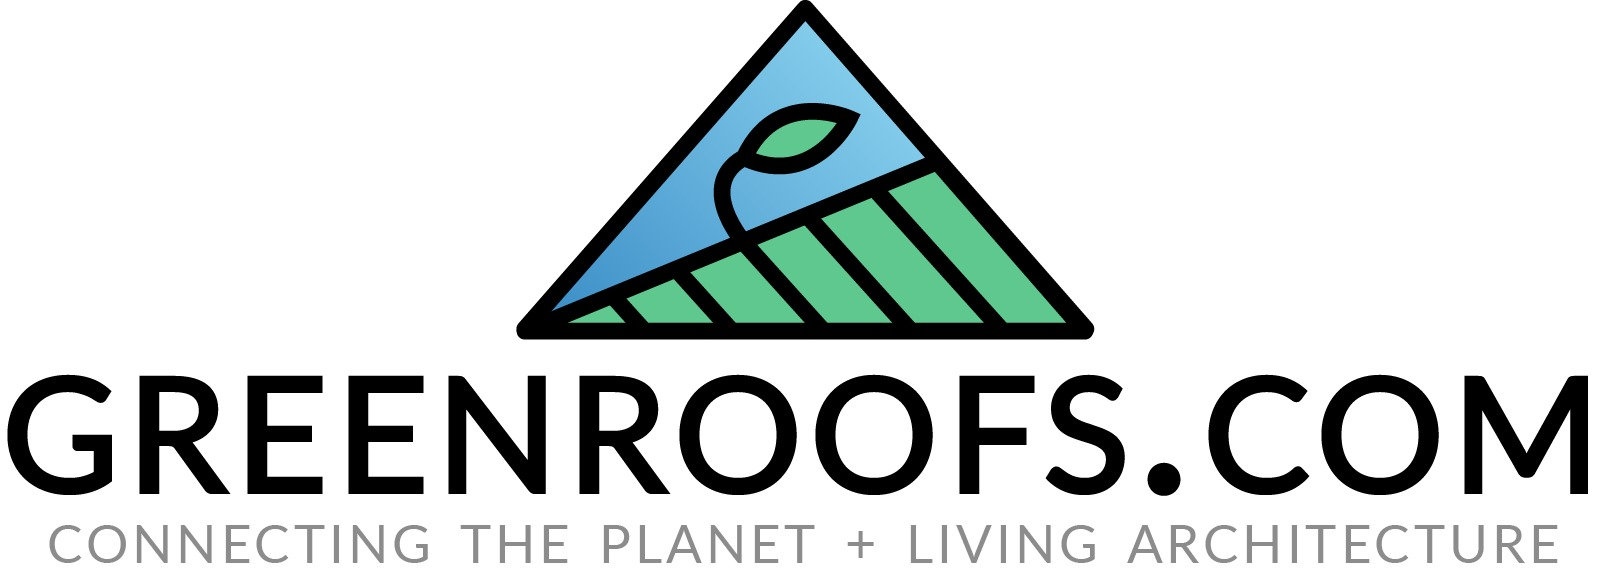 greenroof logo with text